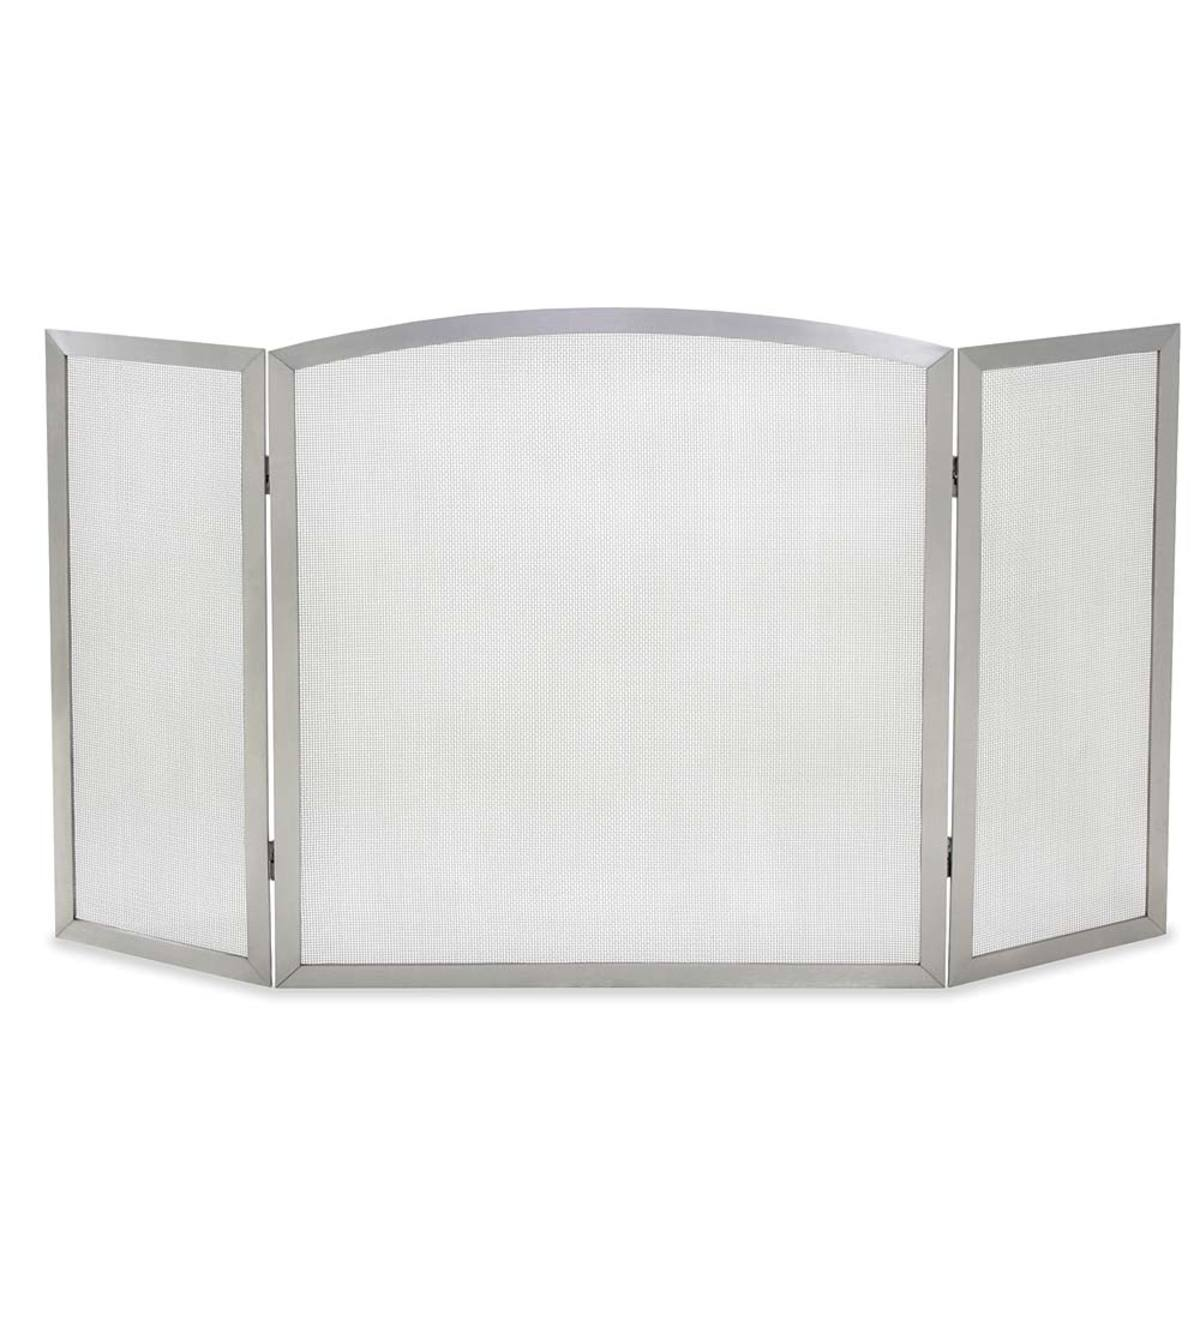 Stainless Steel Newport Tri-Folding Fireplace Screen